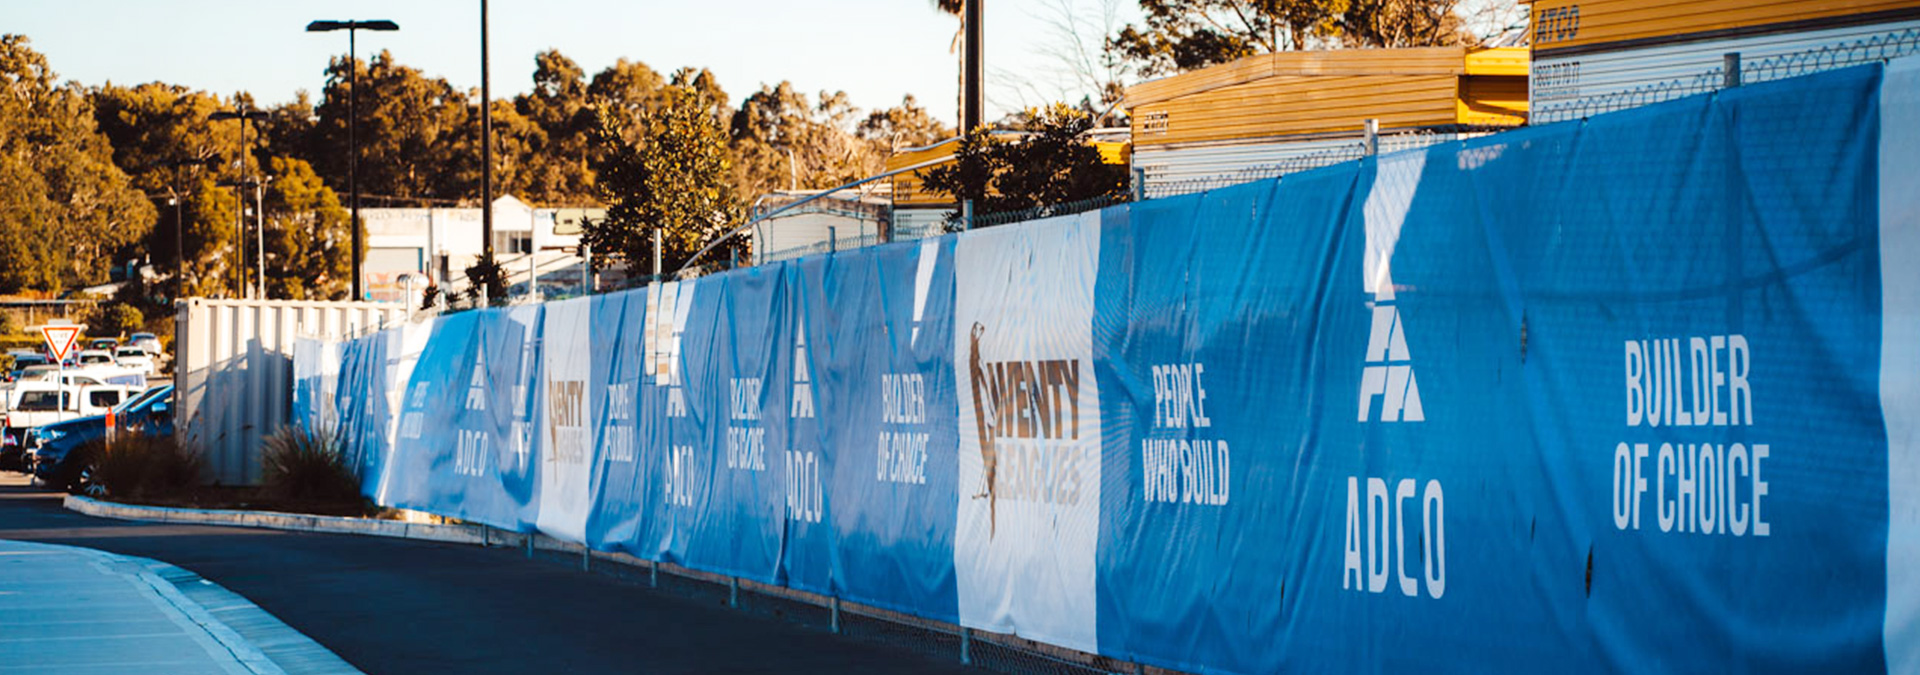 Fence mesh for ADCO's Wenty Leagues Revamp